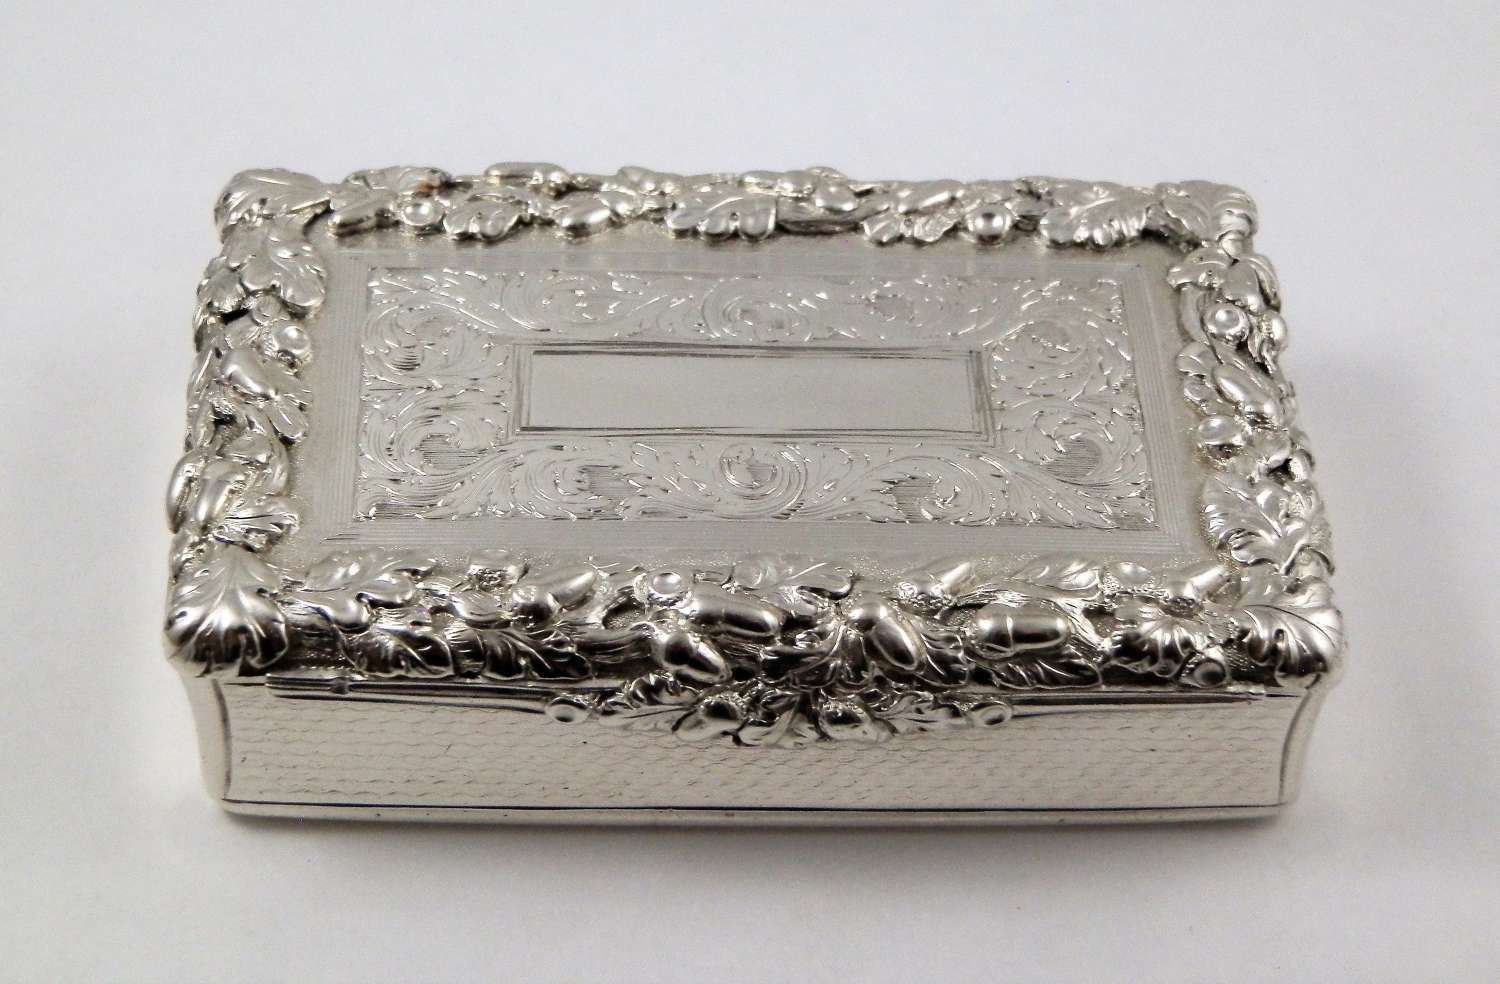 Victorian silver table snuff, Nathaniel Mills, 1839